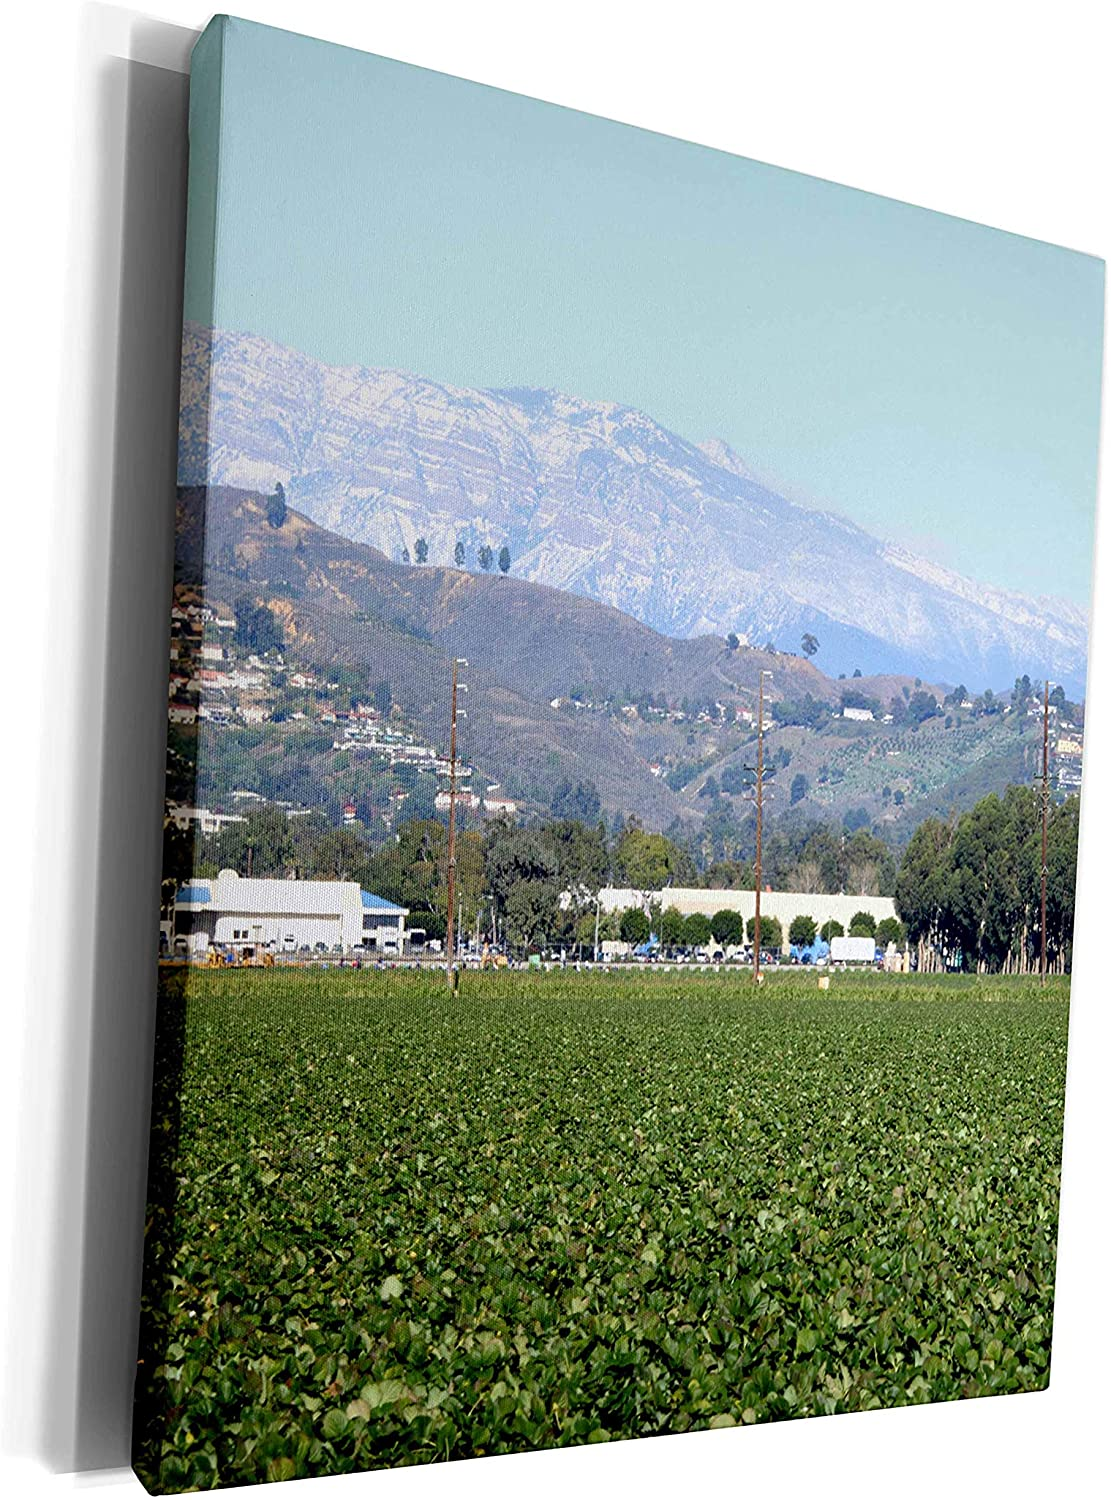 3dRose Henrik Lehnerer Designs - Nature - View of a strawberry field with snow mountains in the background. - Museum Grade Canvas Wrap (cw_211976_1)